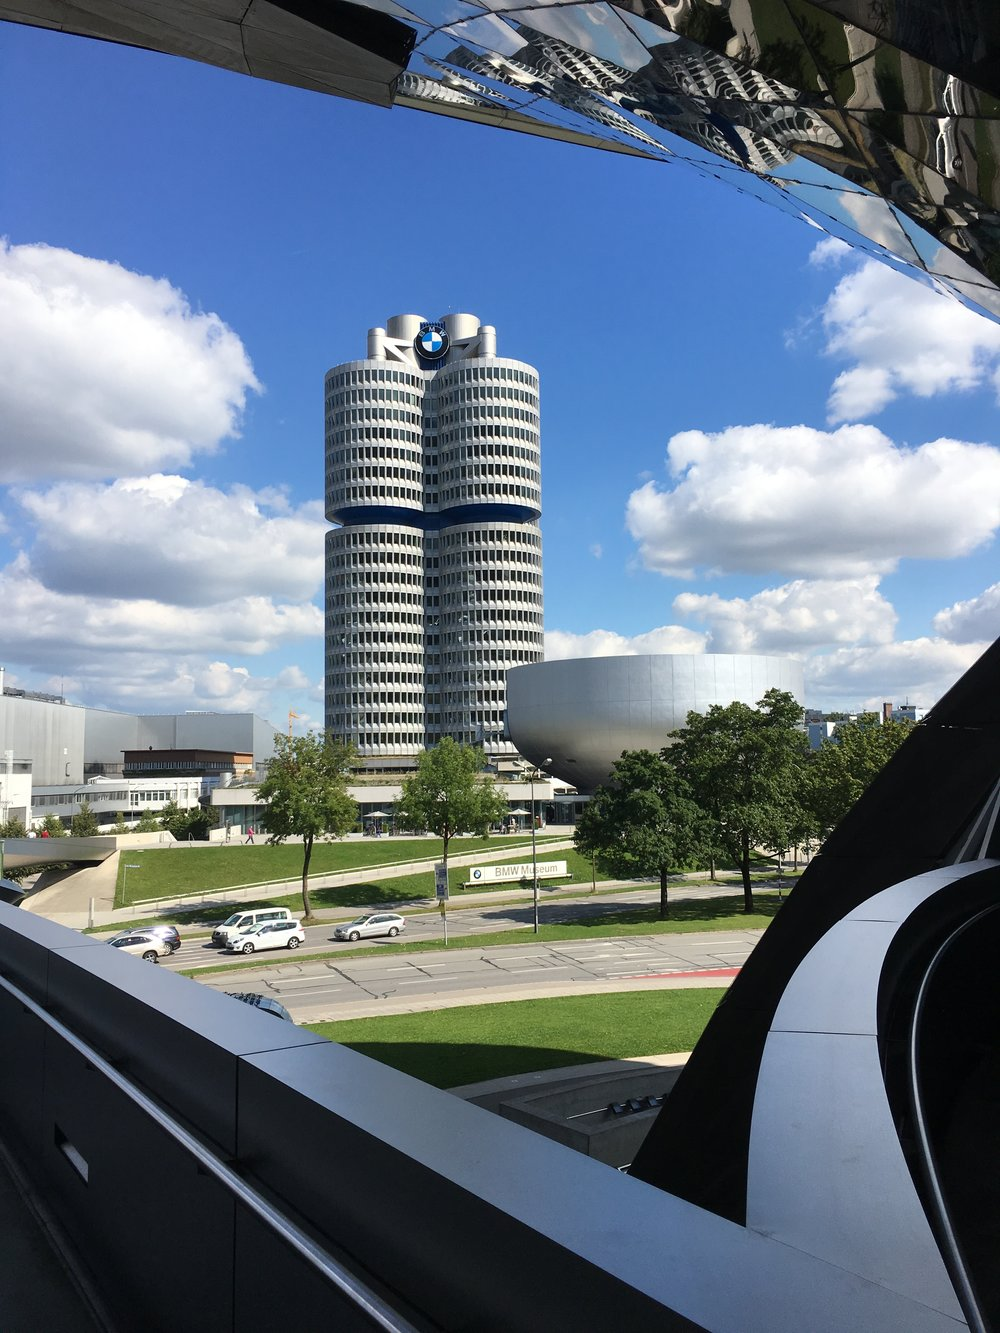 BMW Headquarters, Munich - iPhone 6s Plus, hand-held, ISO 25, f/2.2, 1/2024